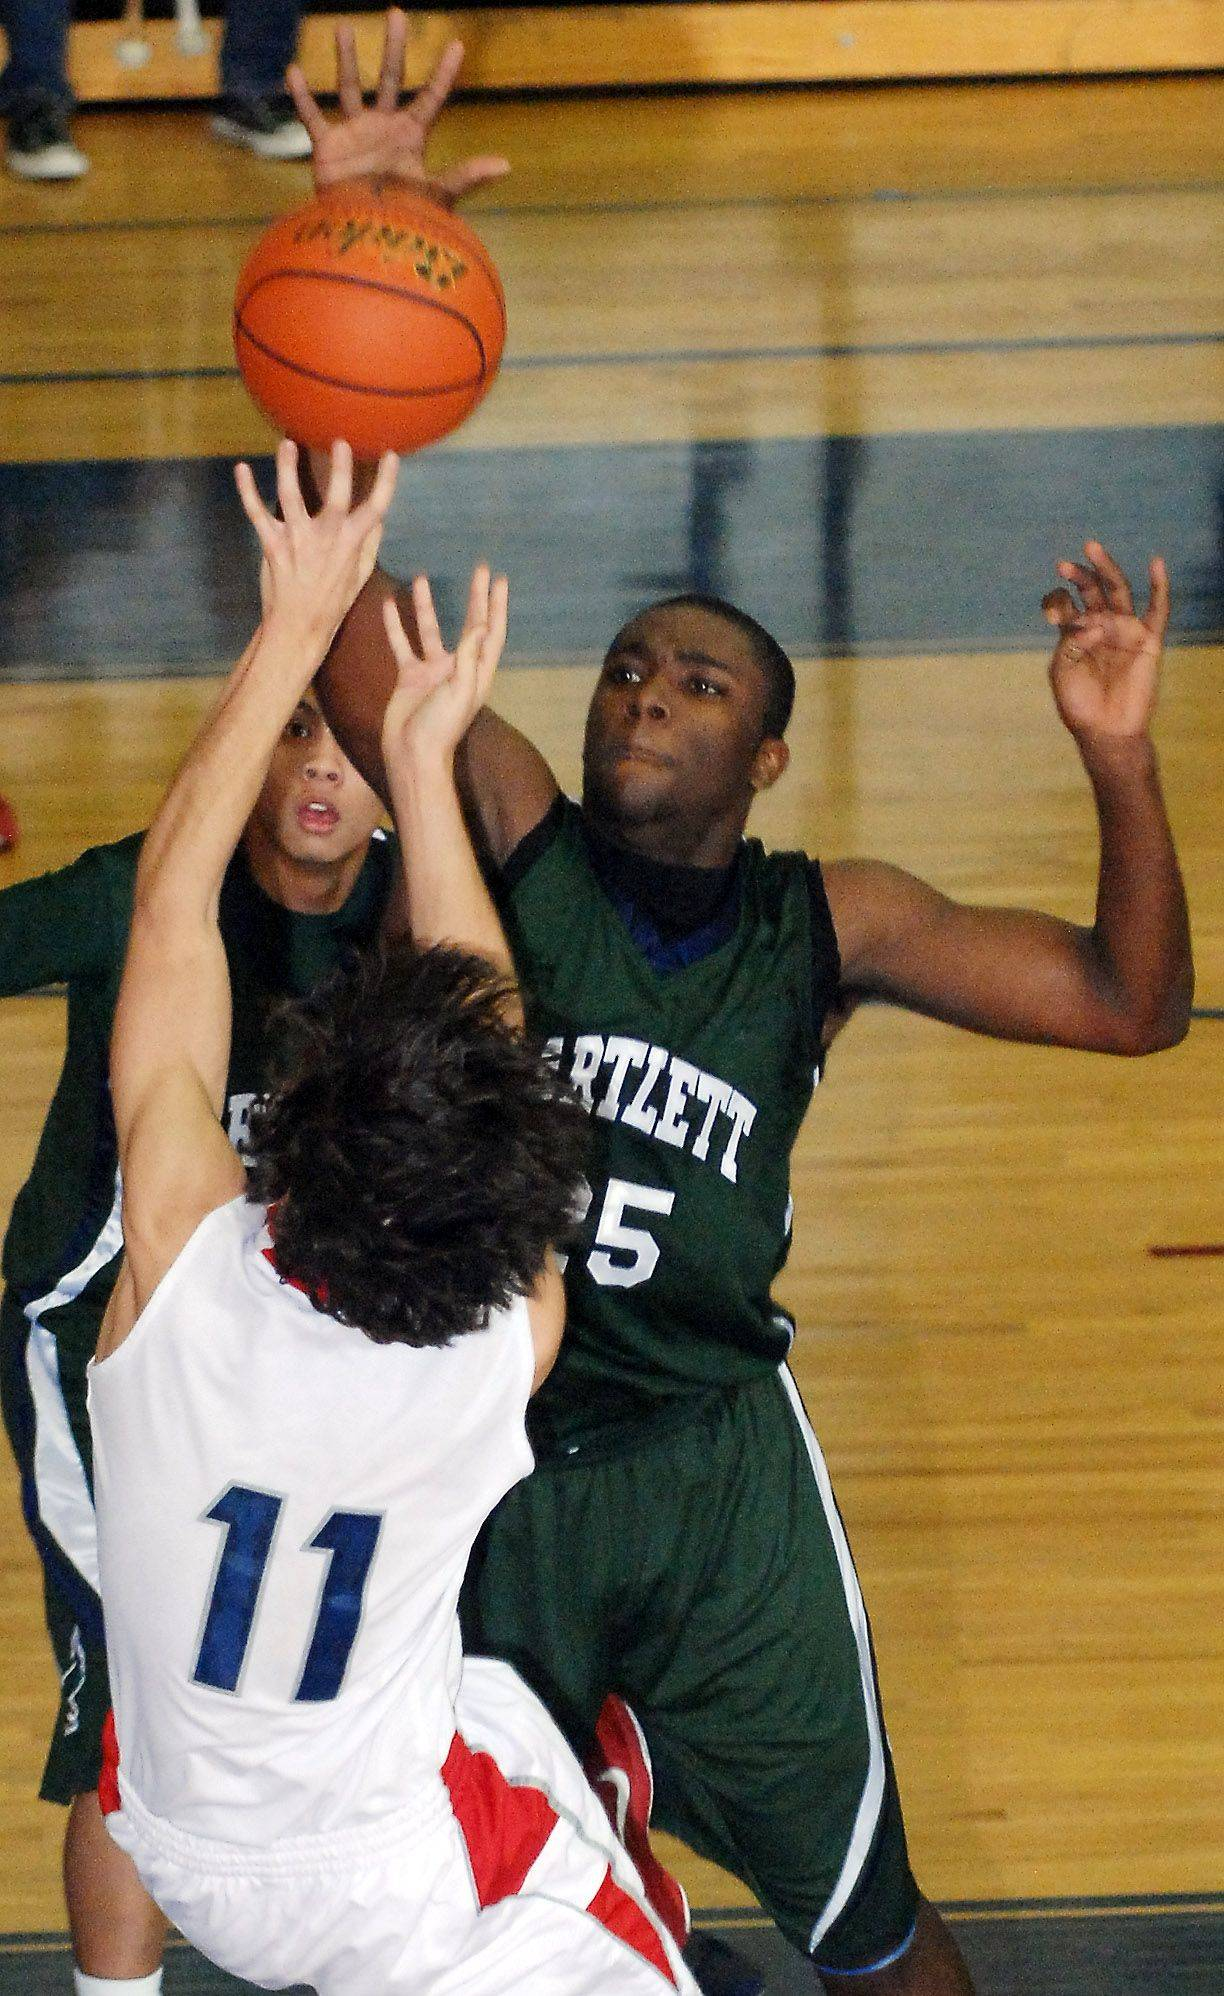 Bartlett's Lorenzo Mitchell defends a fallaway shot by South Elgin's Sammy Sutter.